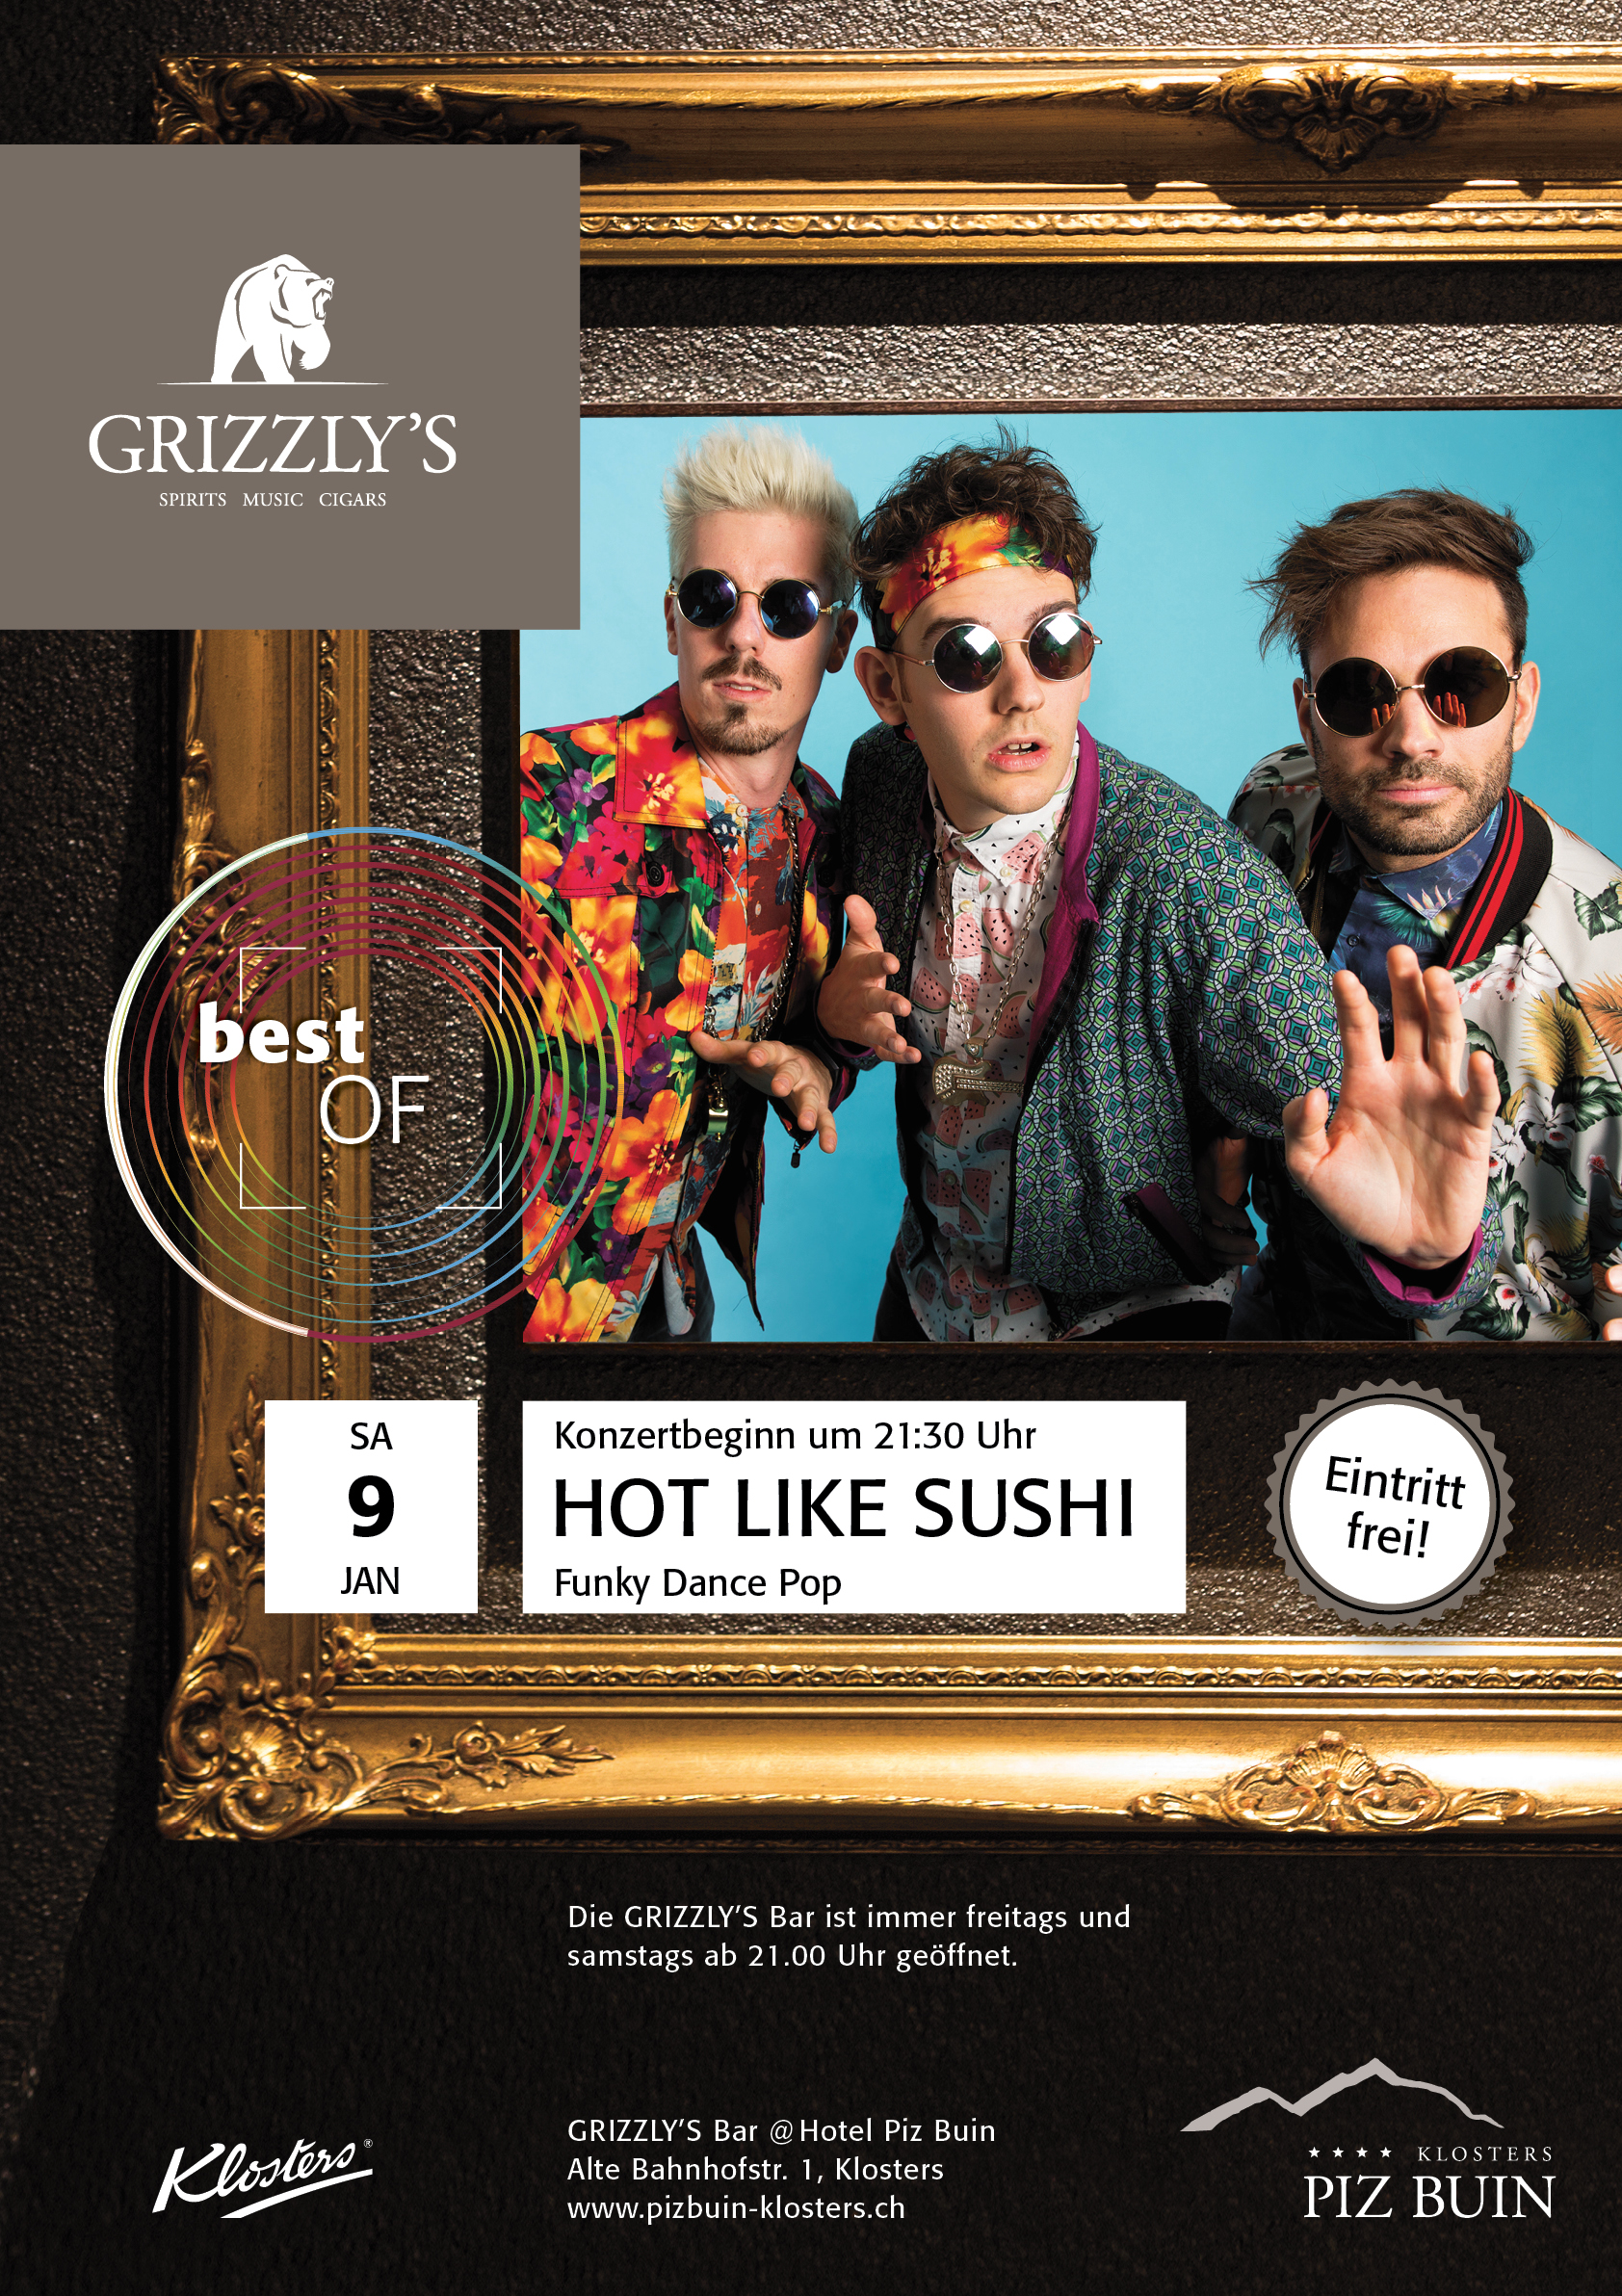 Plakat Hot Like Sushe Grizzly's Bar Hotel Piz Buin Klosters by uniik.com